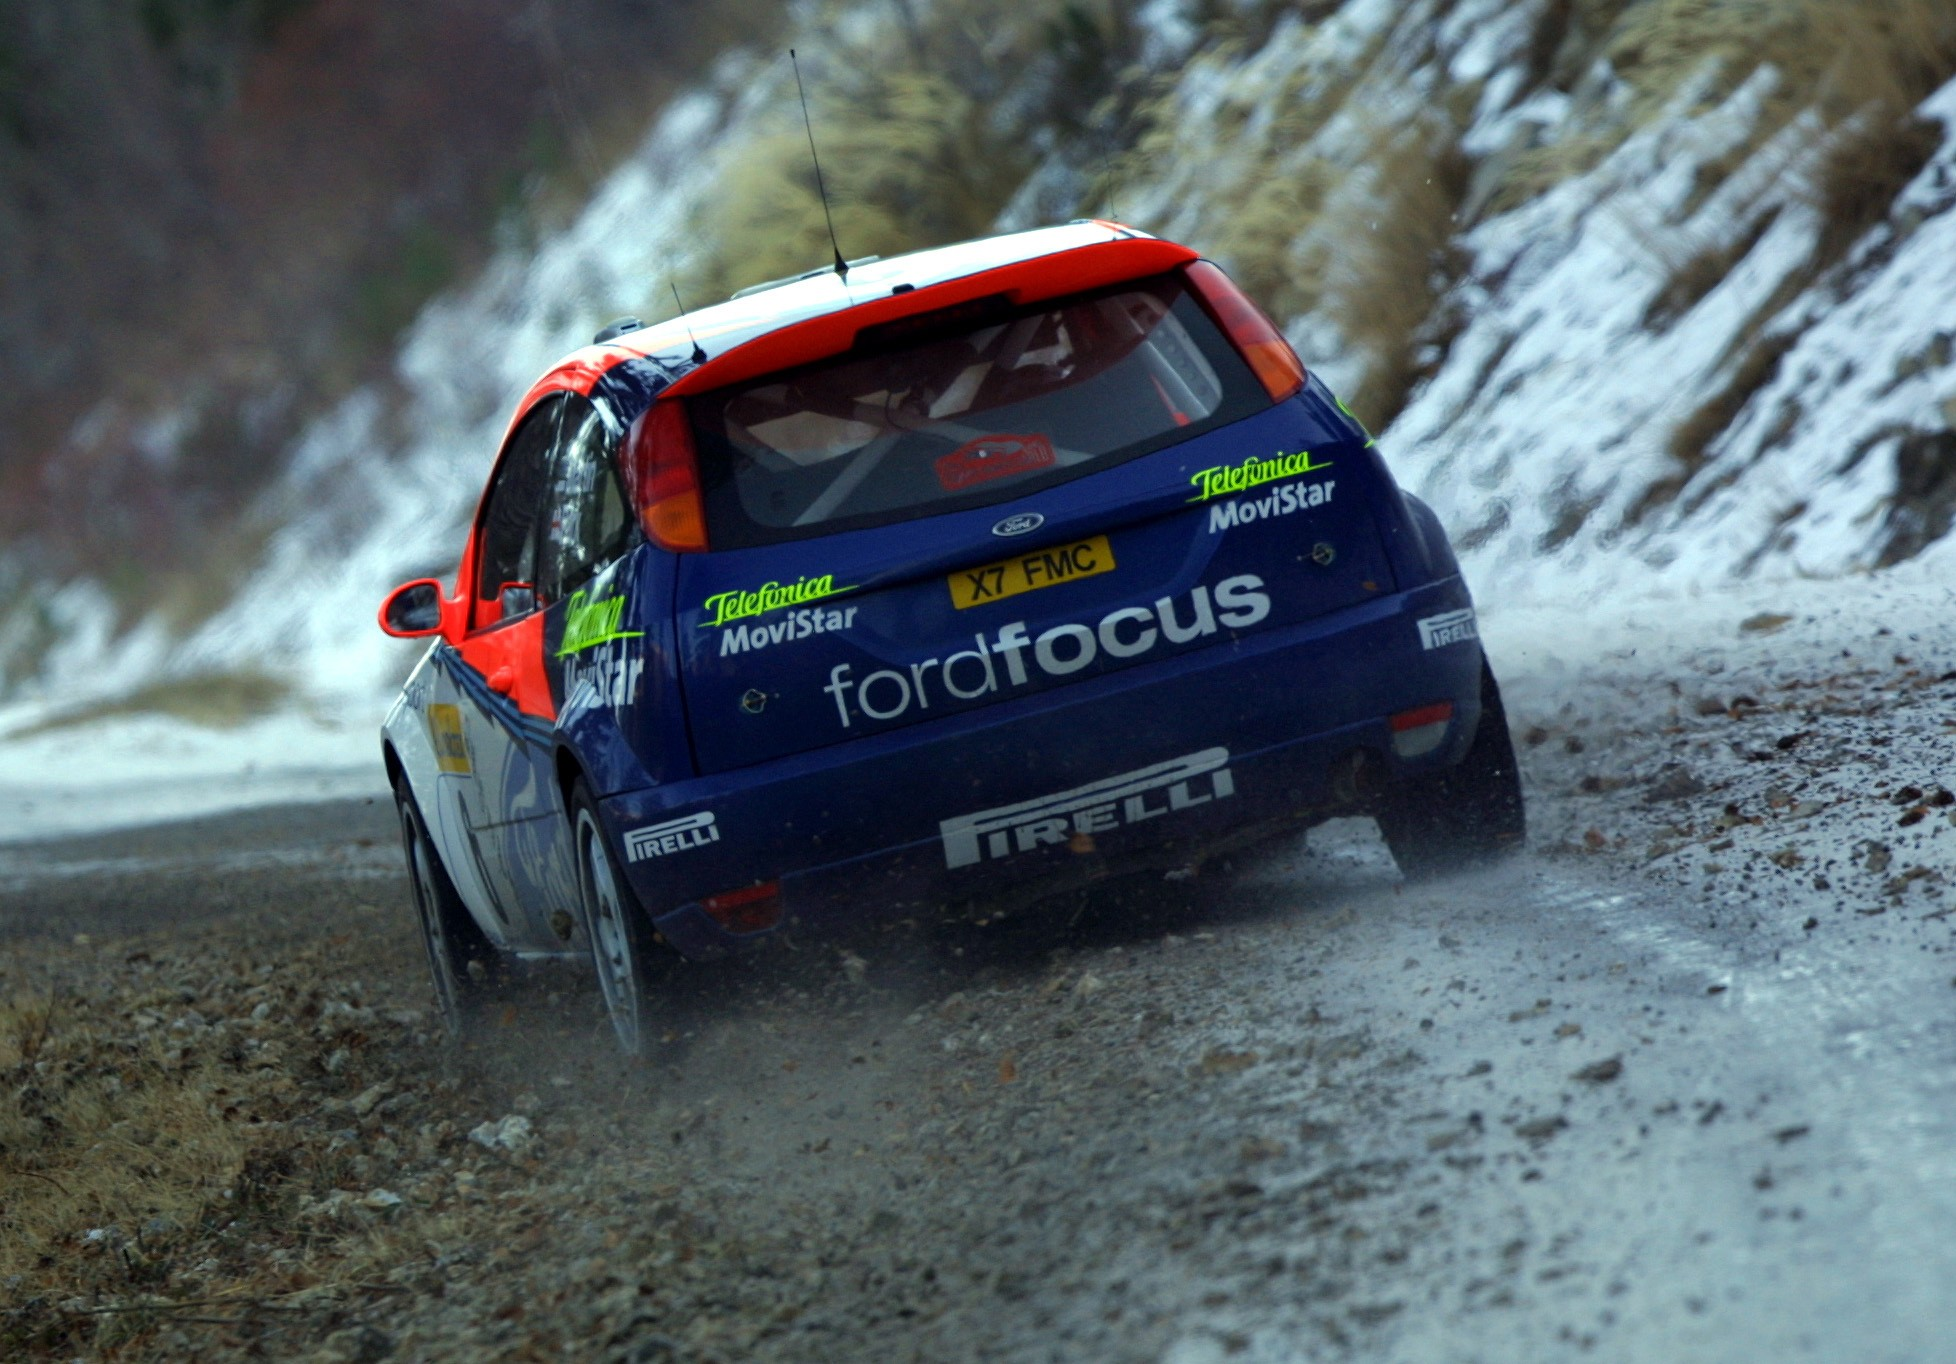 pic_of_the_day_mcrae_focus_x7_fmc.jpg